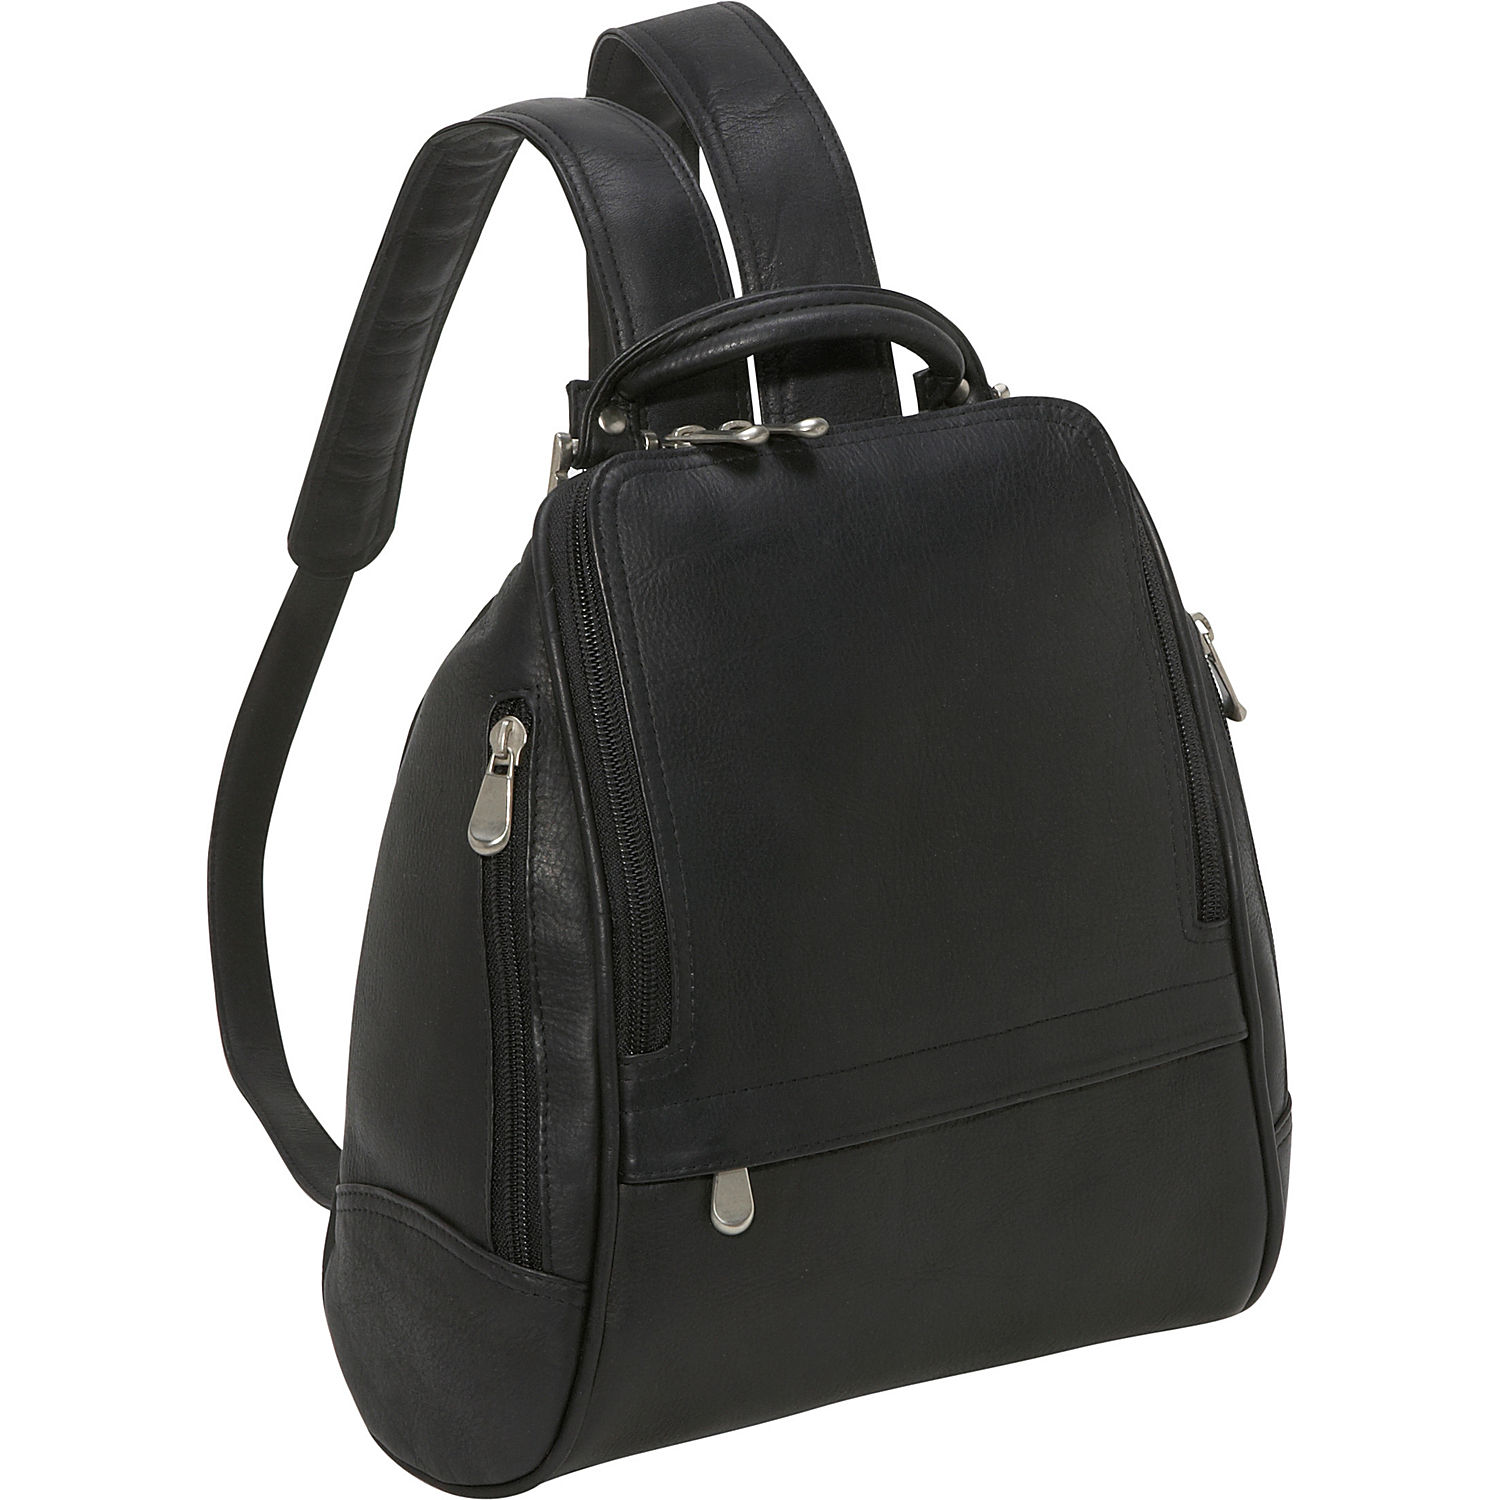 Backpacks are back! Shop on-trend designer leather backpacks by Brahmin in a variety of sizes, colors, and styles to carry your essentials on the go. Perfect for travel or daily use, stow your laptop, wallet, & everyday items conveniently in these spacious, genuine leather backpacks that are quality-constructed to last.